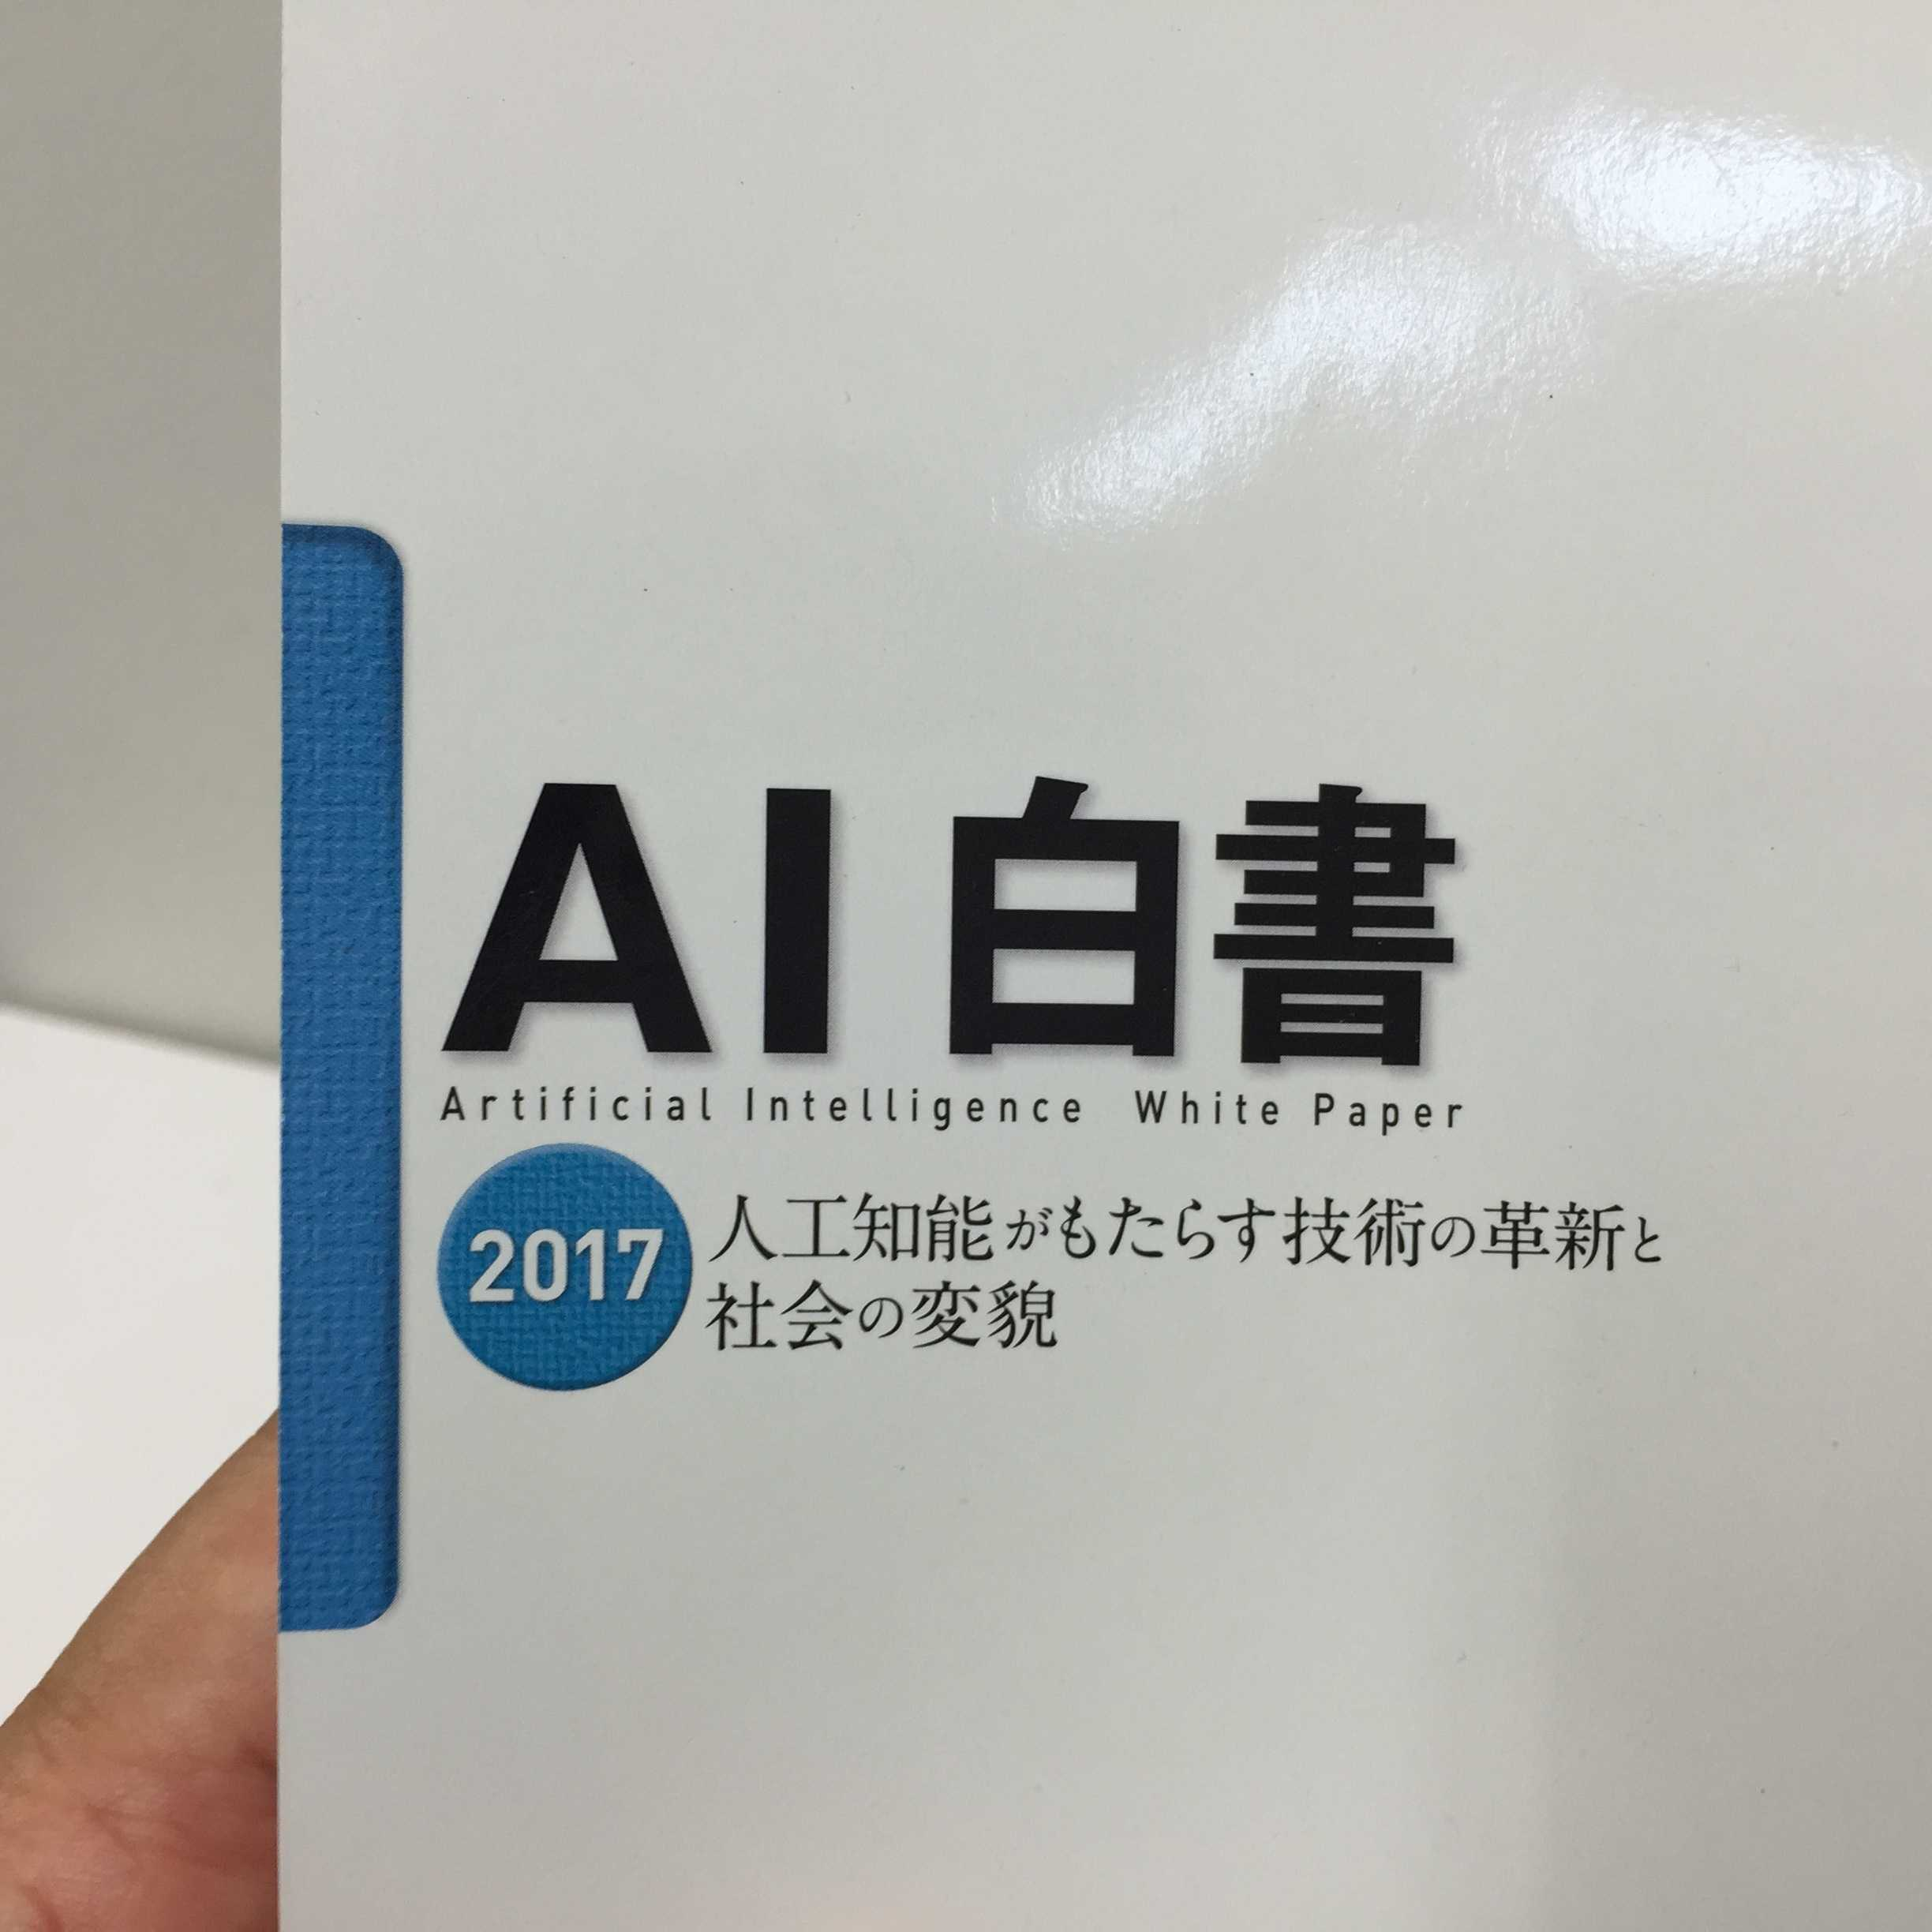 AI白書 2017 - Artificial Intelligence White Paper 2017